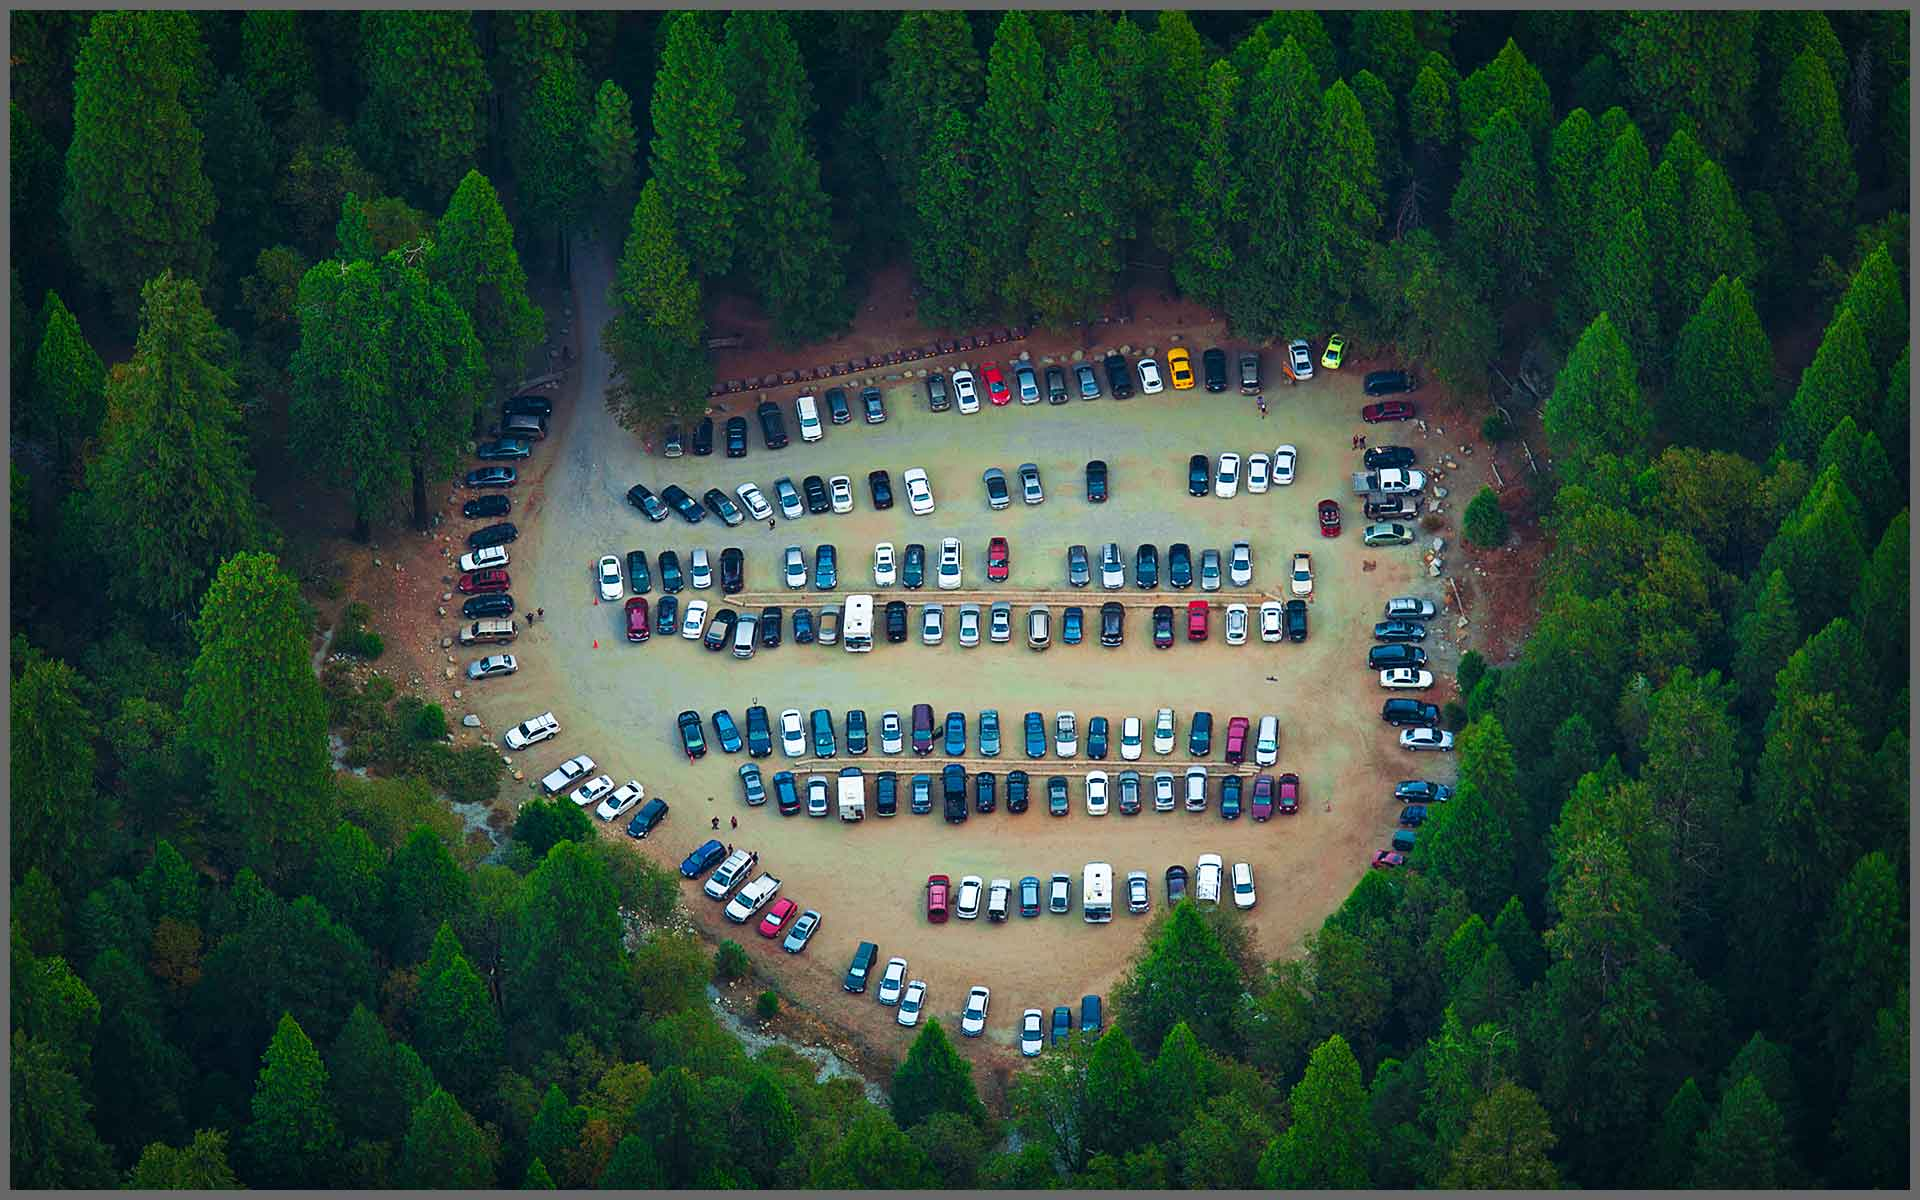 Yosemite Valley Parking Lot